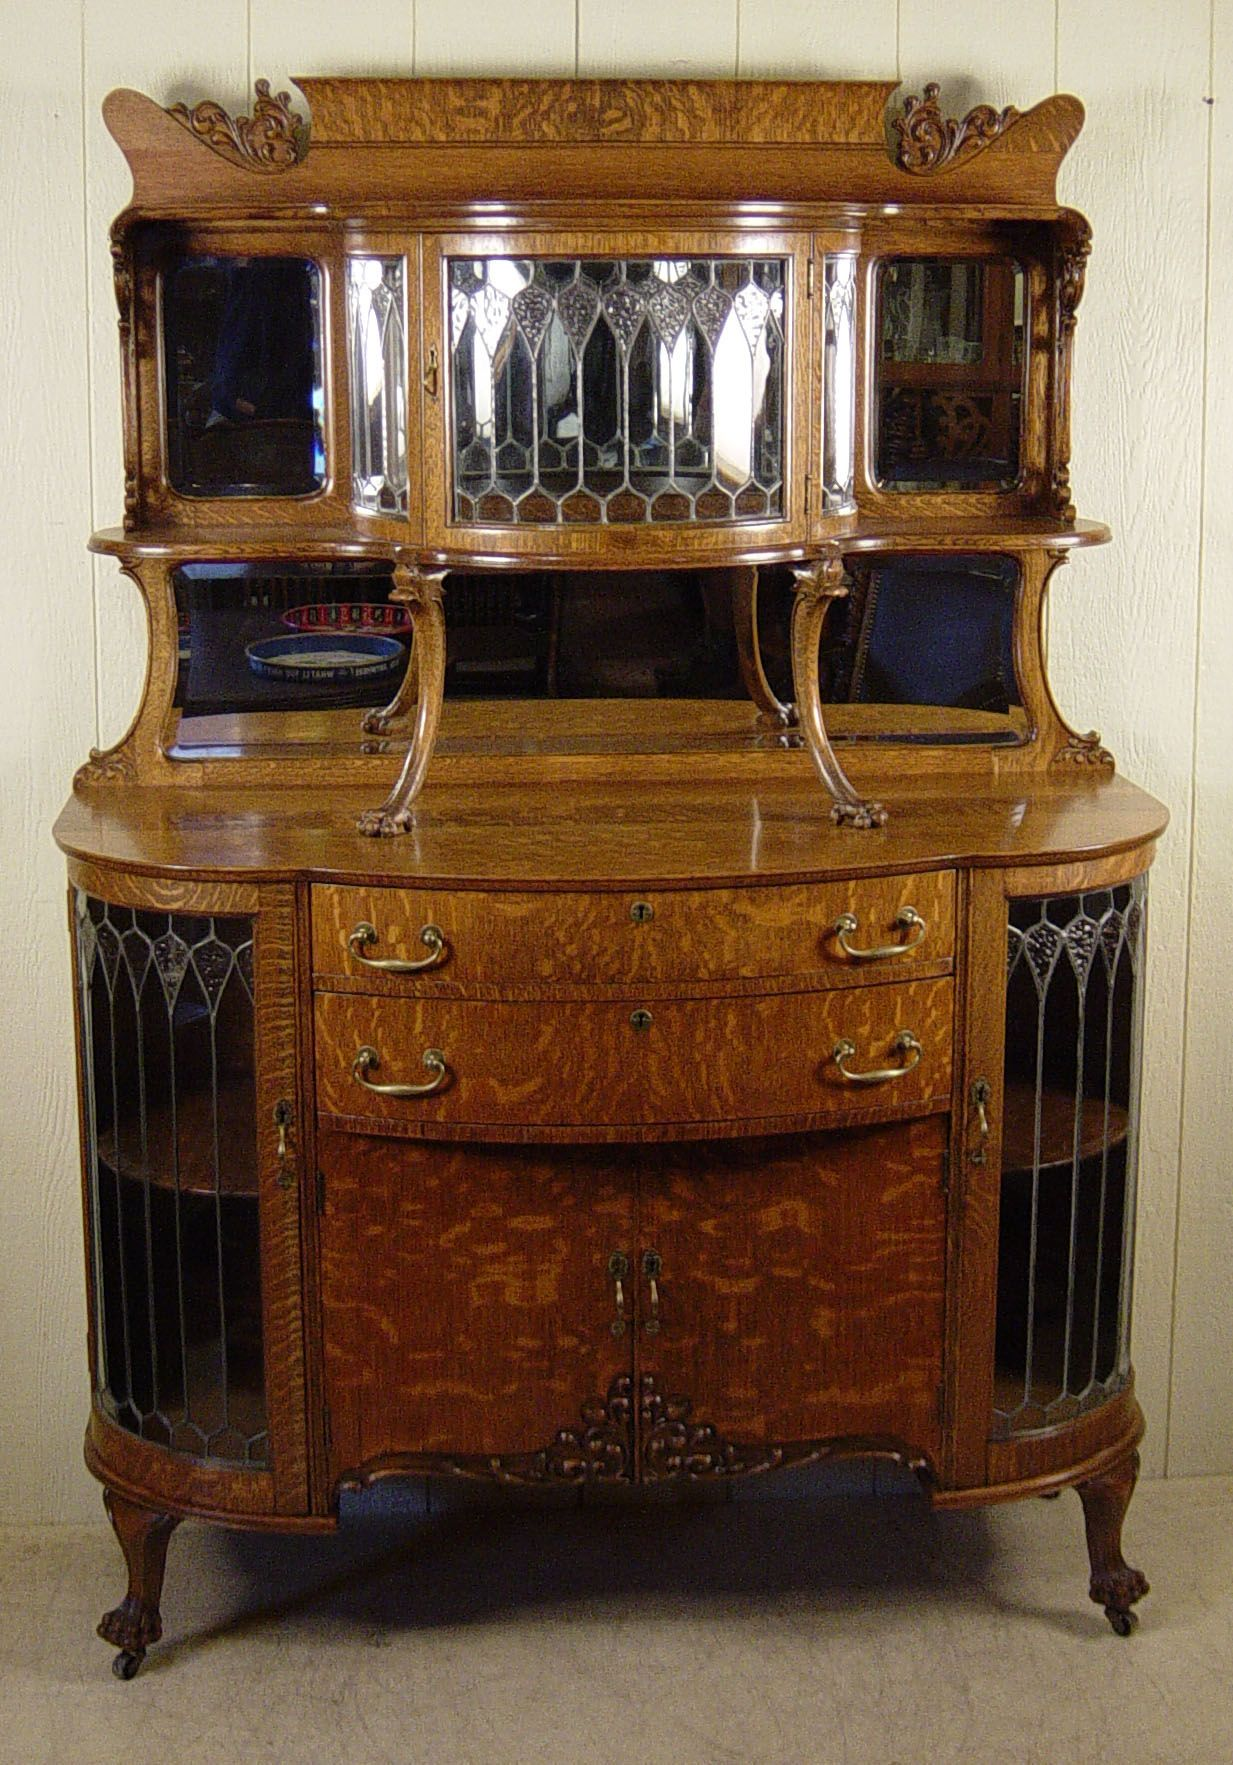 Exceptional Oak Curio Buffet With Curved Leaded Glass Painted Furniture Designs Sideboard Furniture Antique Furniture